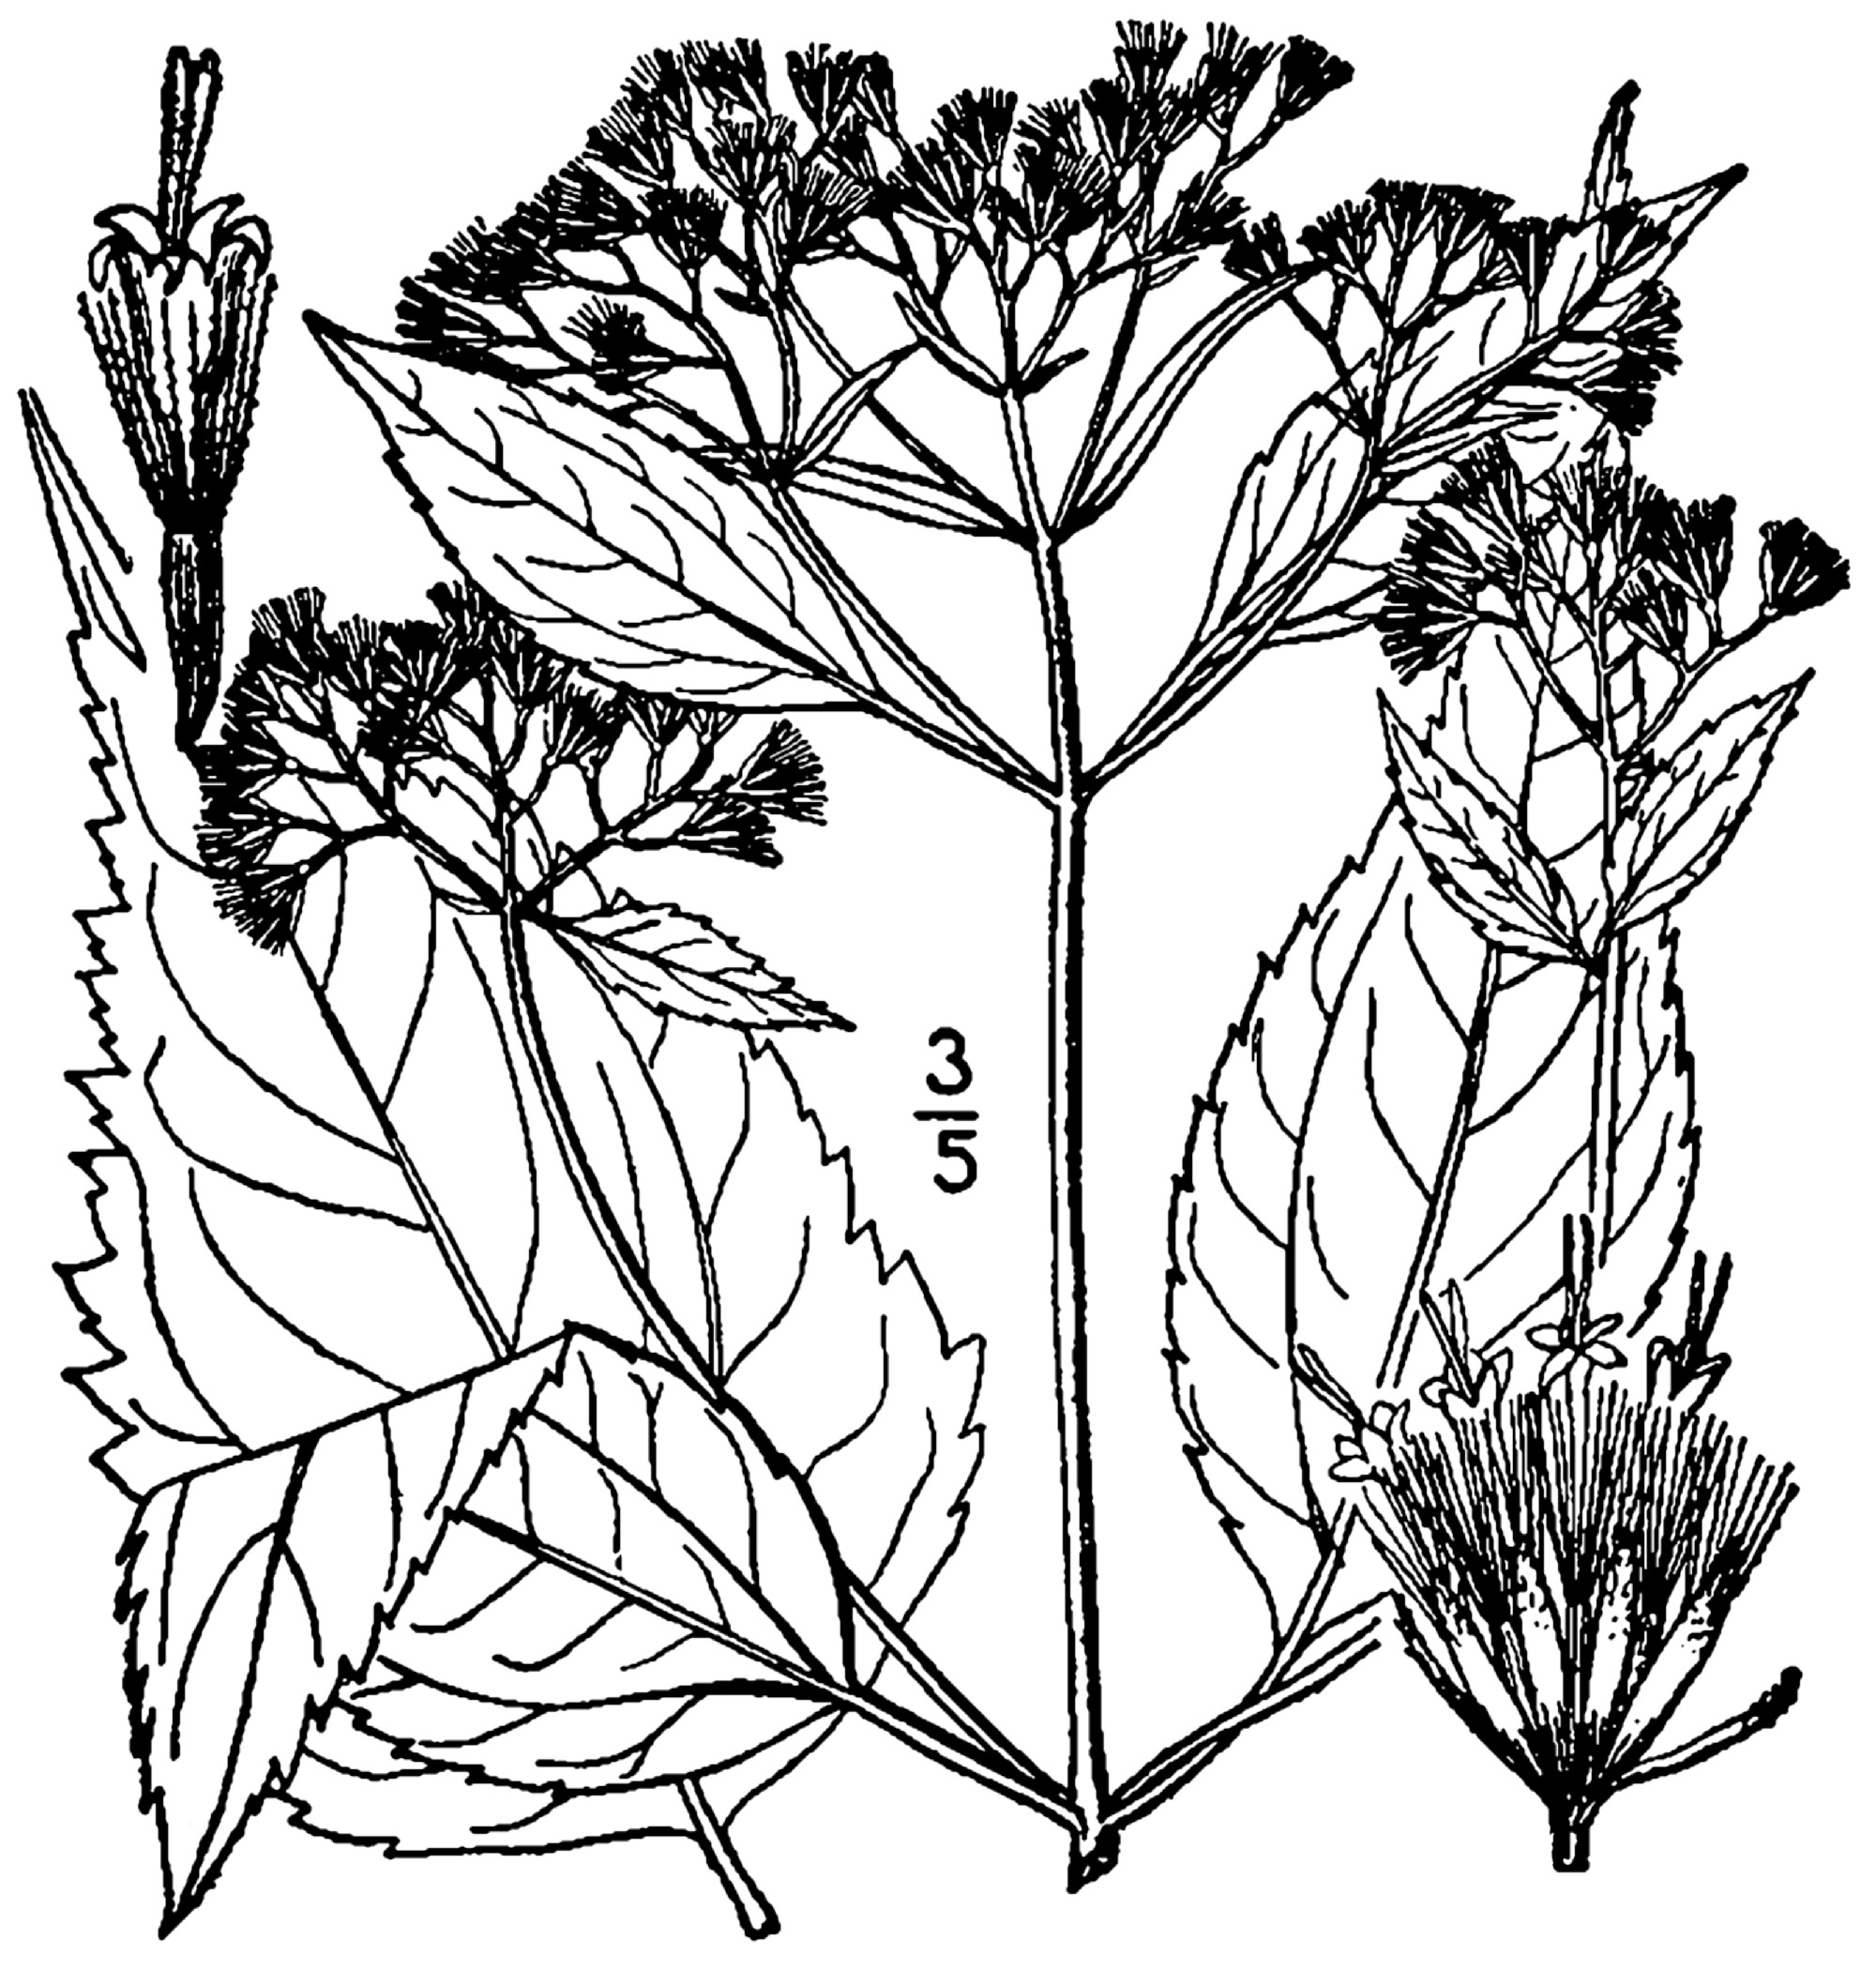 1913 White Snakeroot illustration.